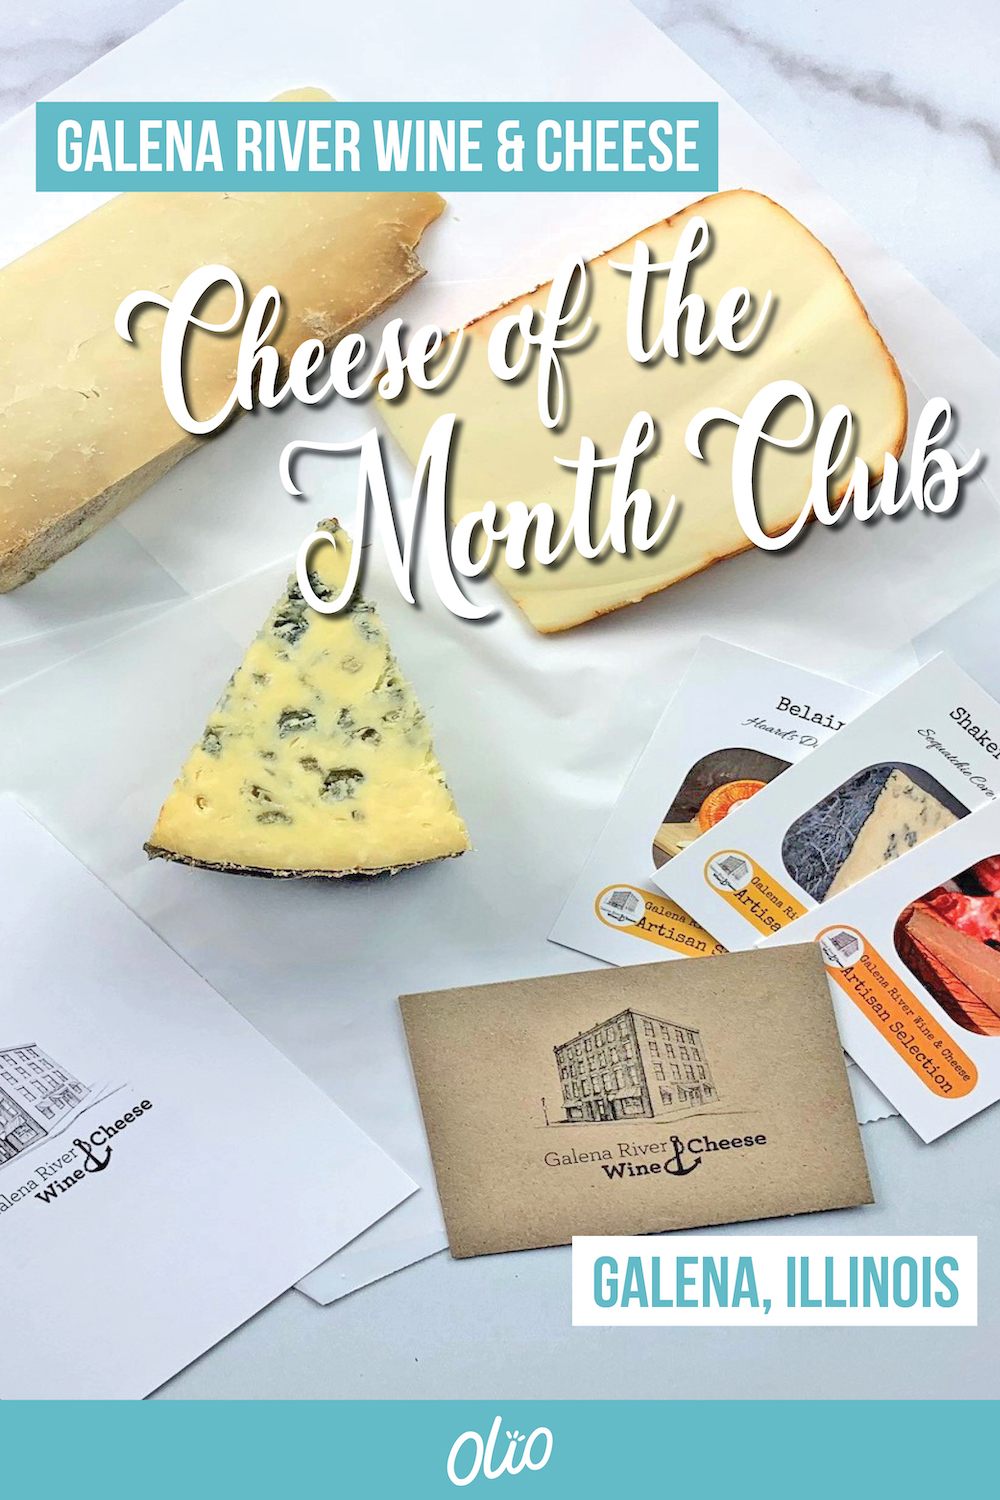 Whether you're shopping for a Midwest gift or just want to treat yourself, a Cheese of the Month Club box from Galena River Wine & Cheese is the perfect option! Enjoy hand selected cheeses from this shop in Galena, Illinois and support a small business in the process. #Midwest #Illinois #foodie